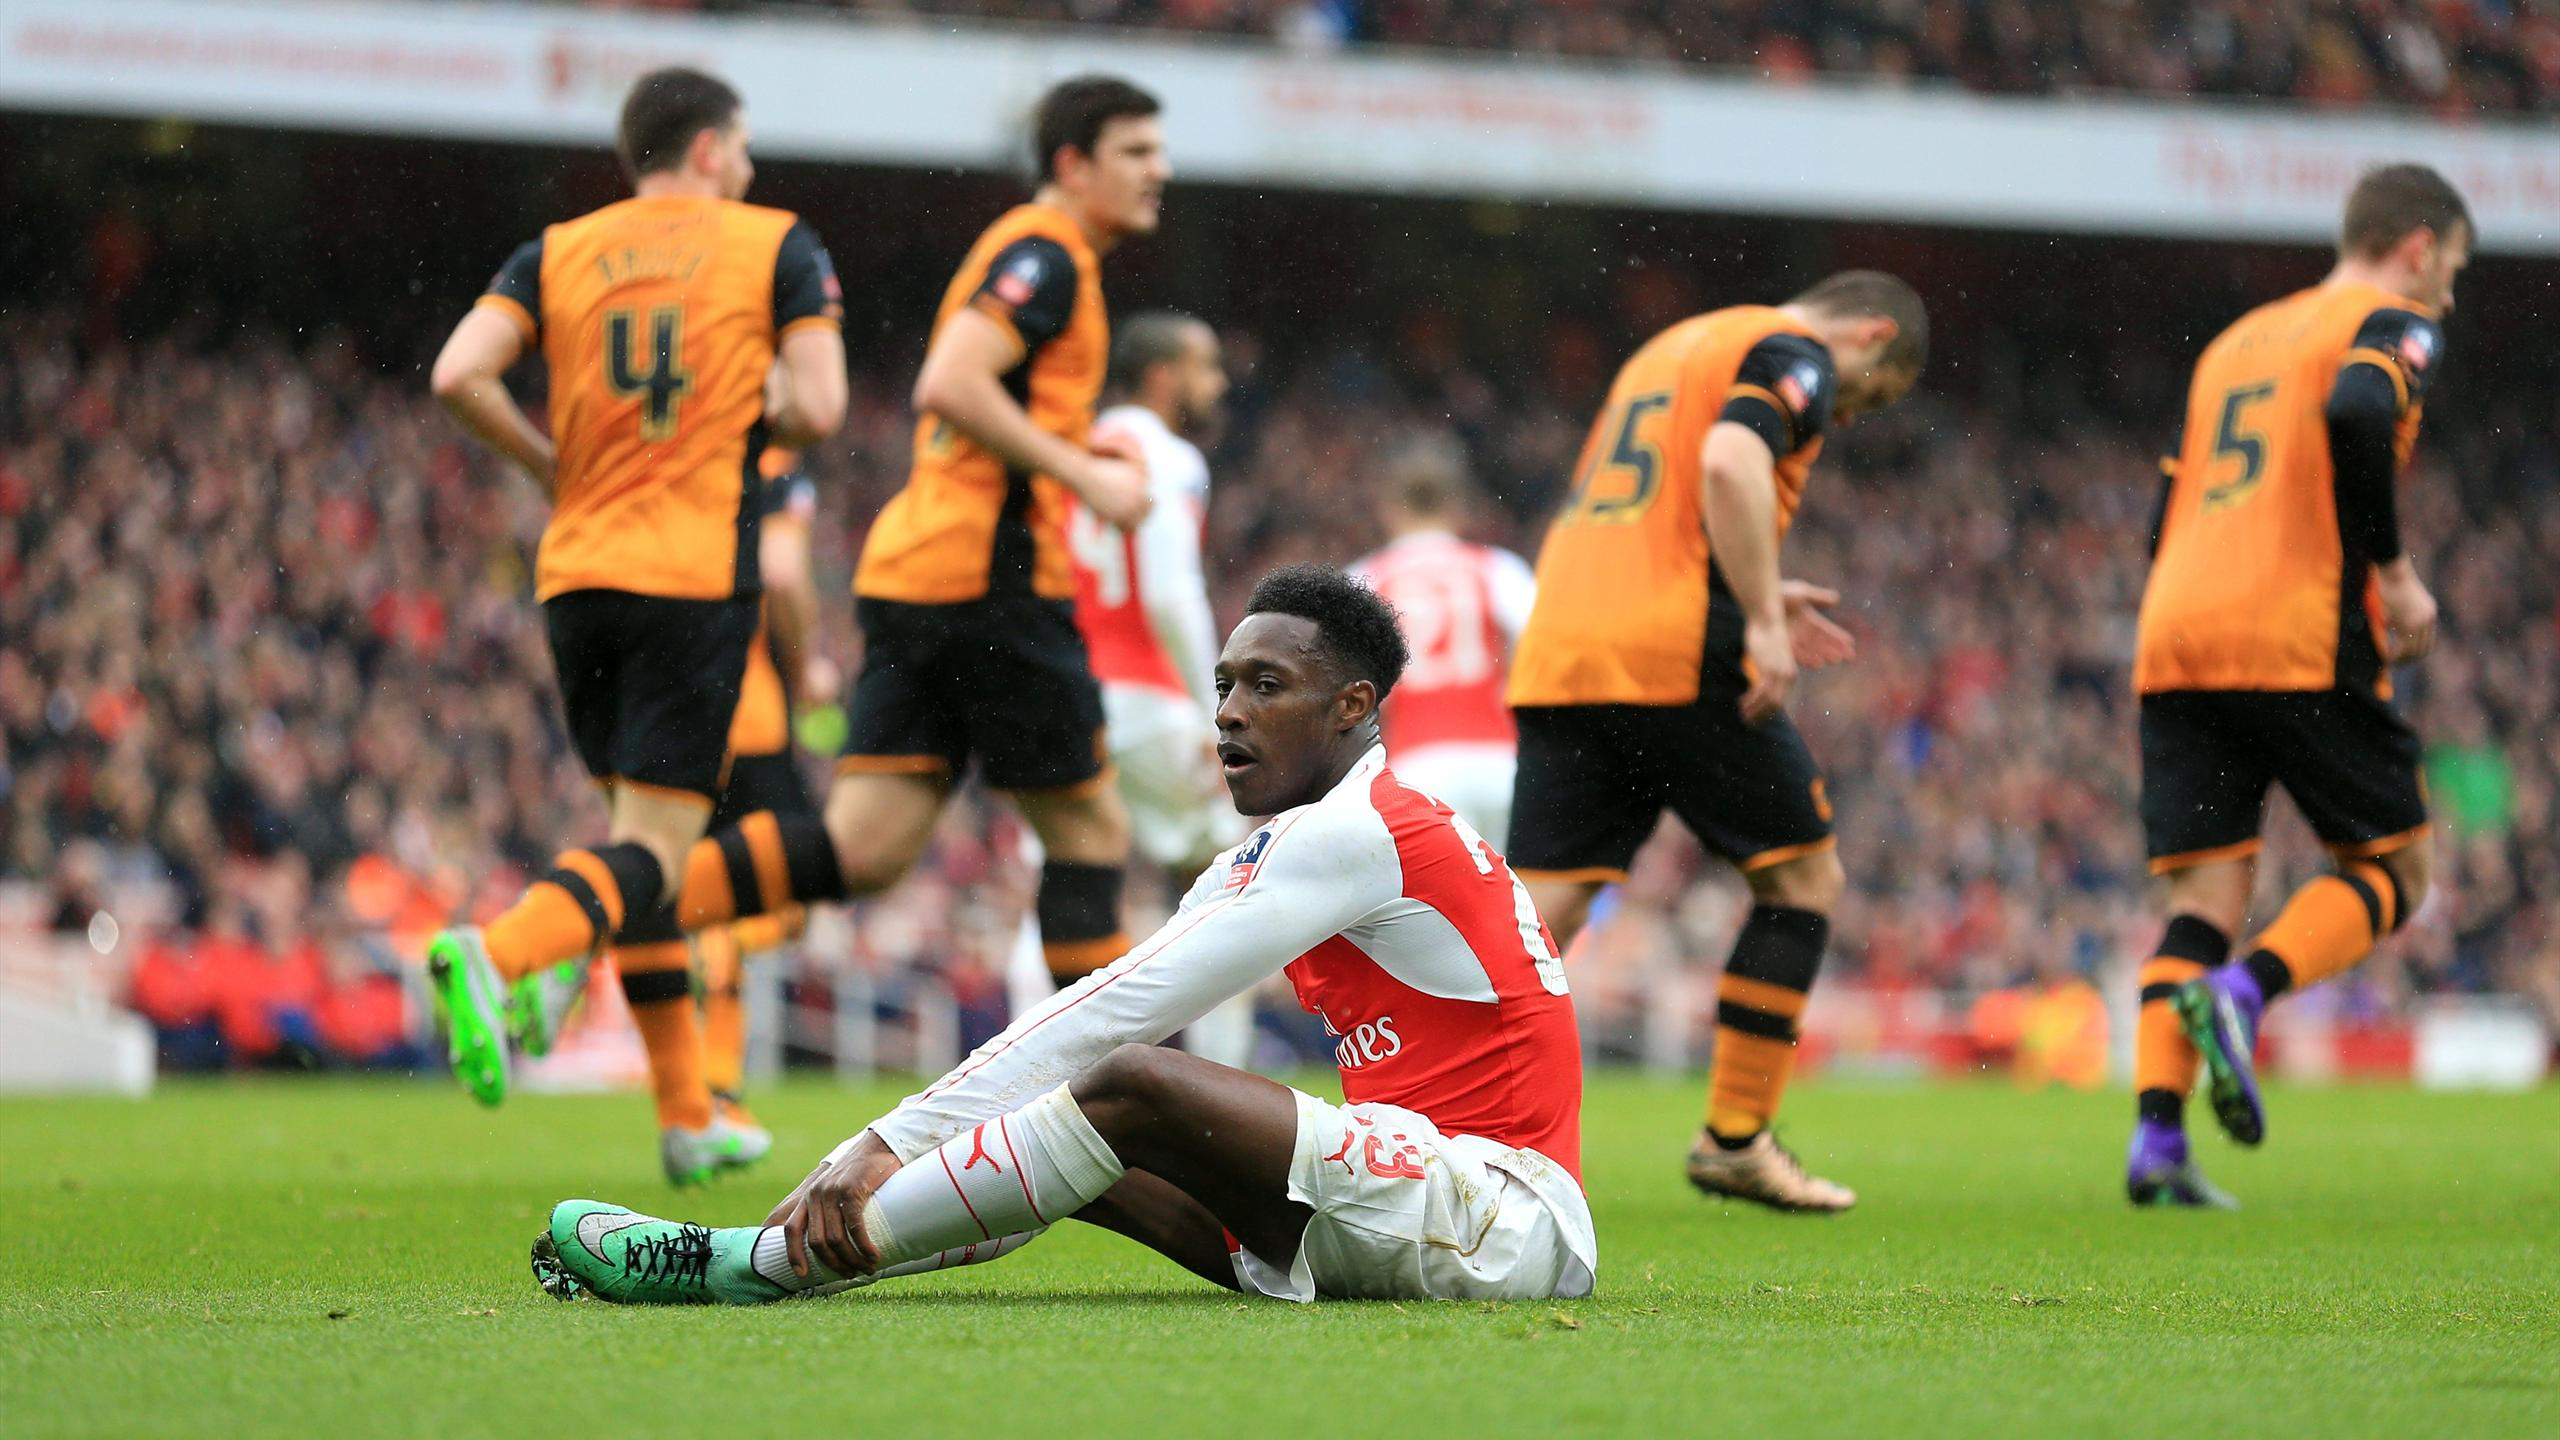 Arsenal's Danny Welbeck sits dejected after missing a chance.